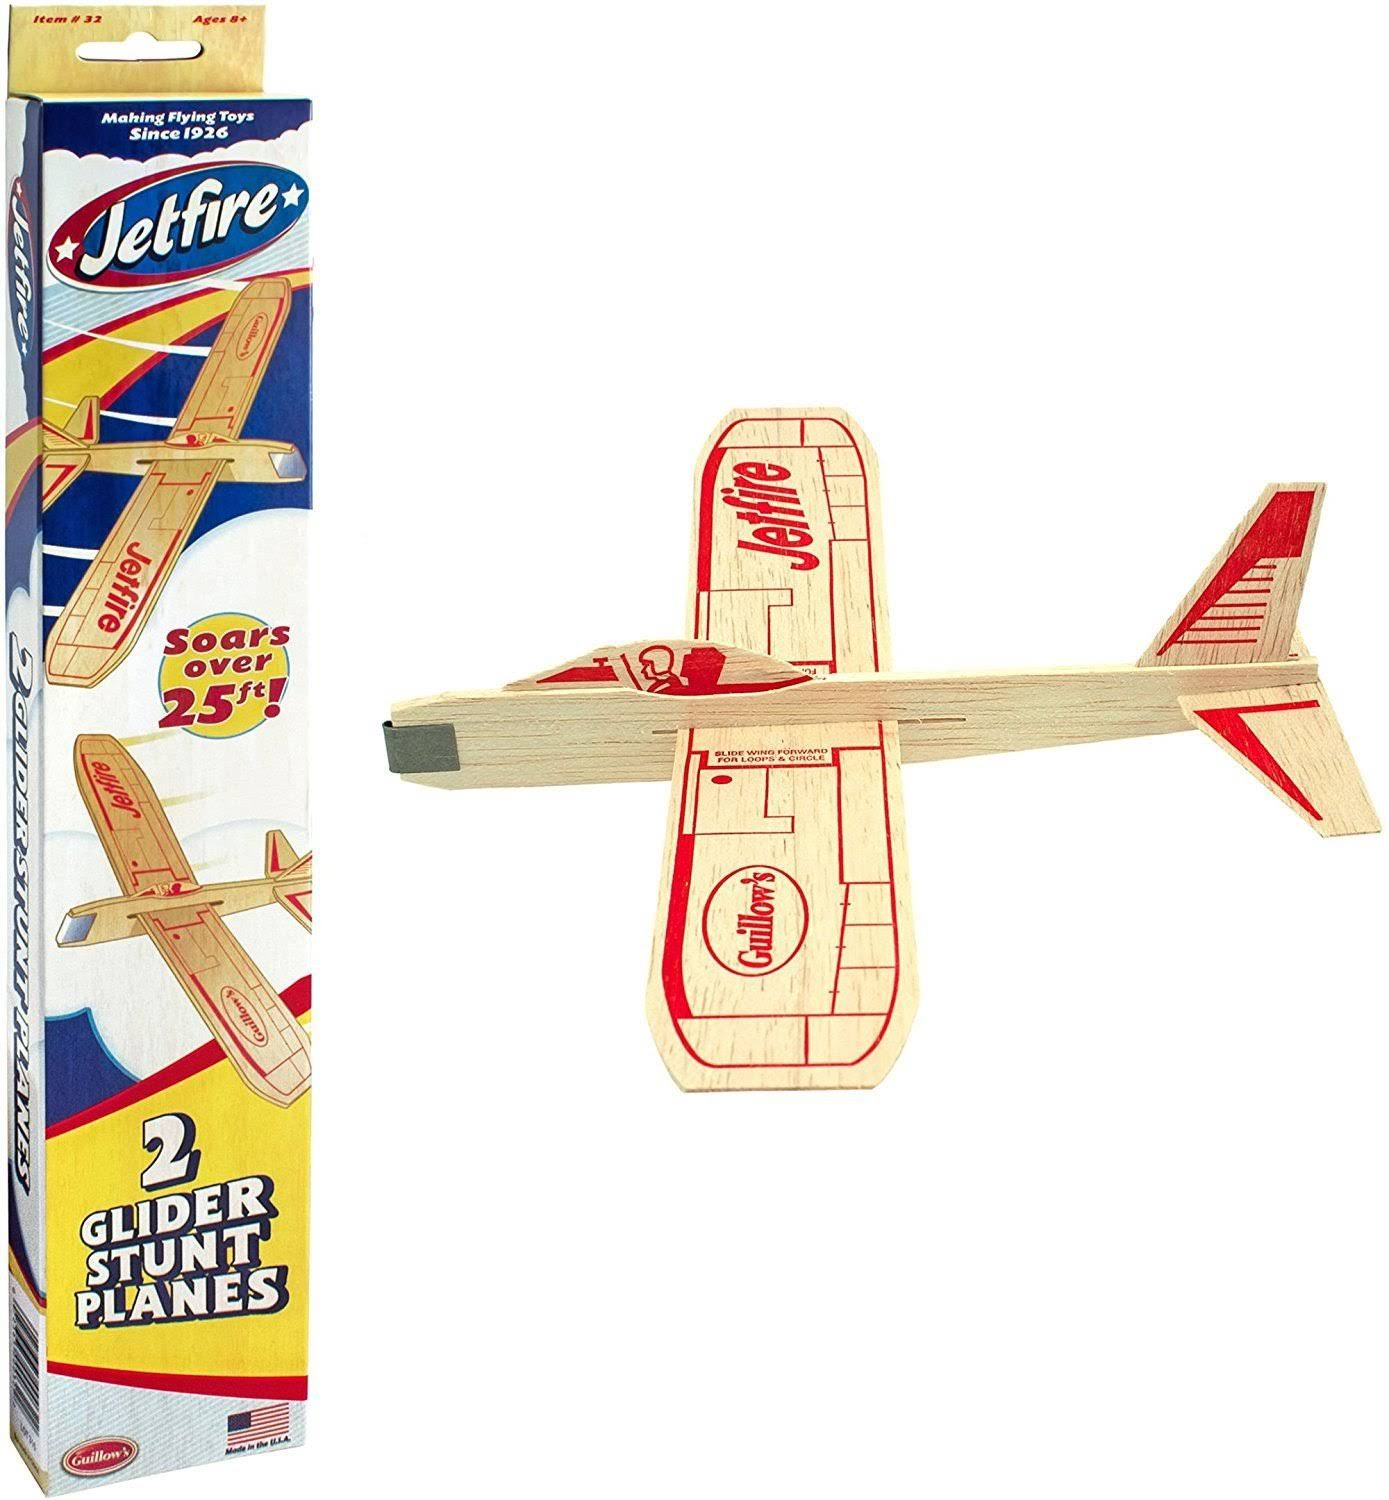 Jetfire Gliders Balsa Wood Planes Twin Pack